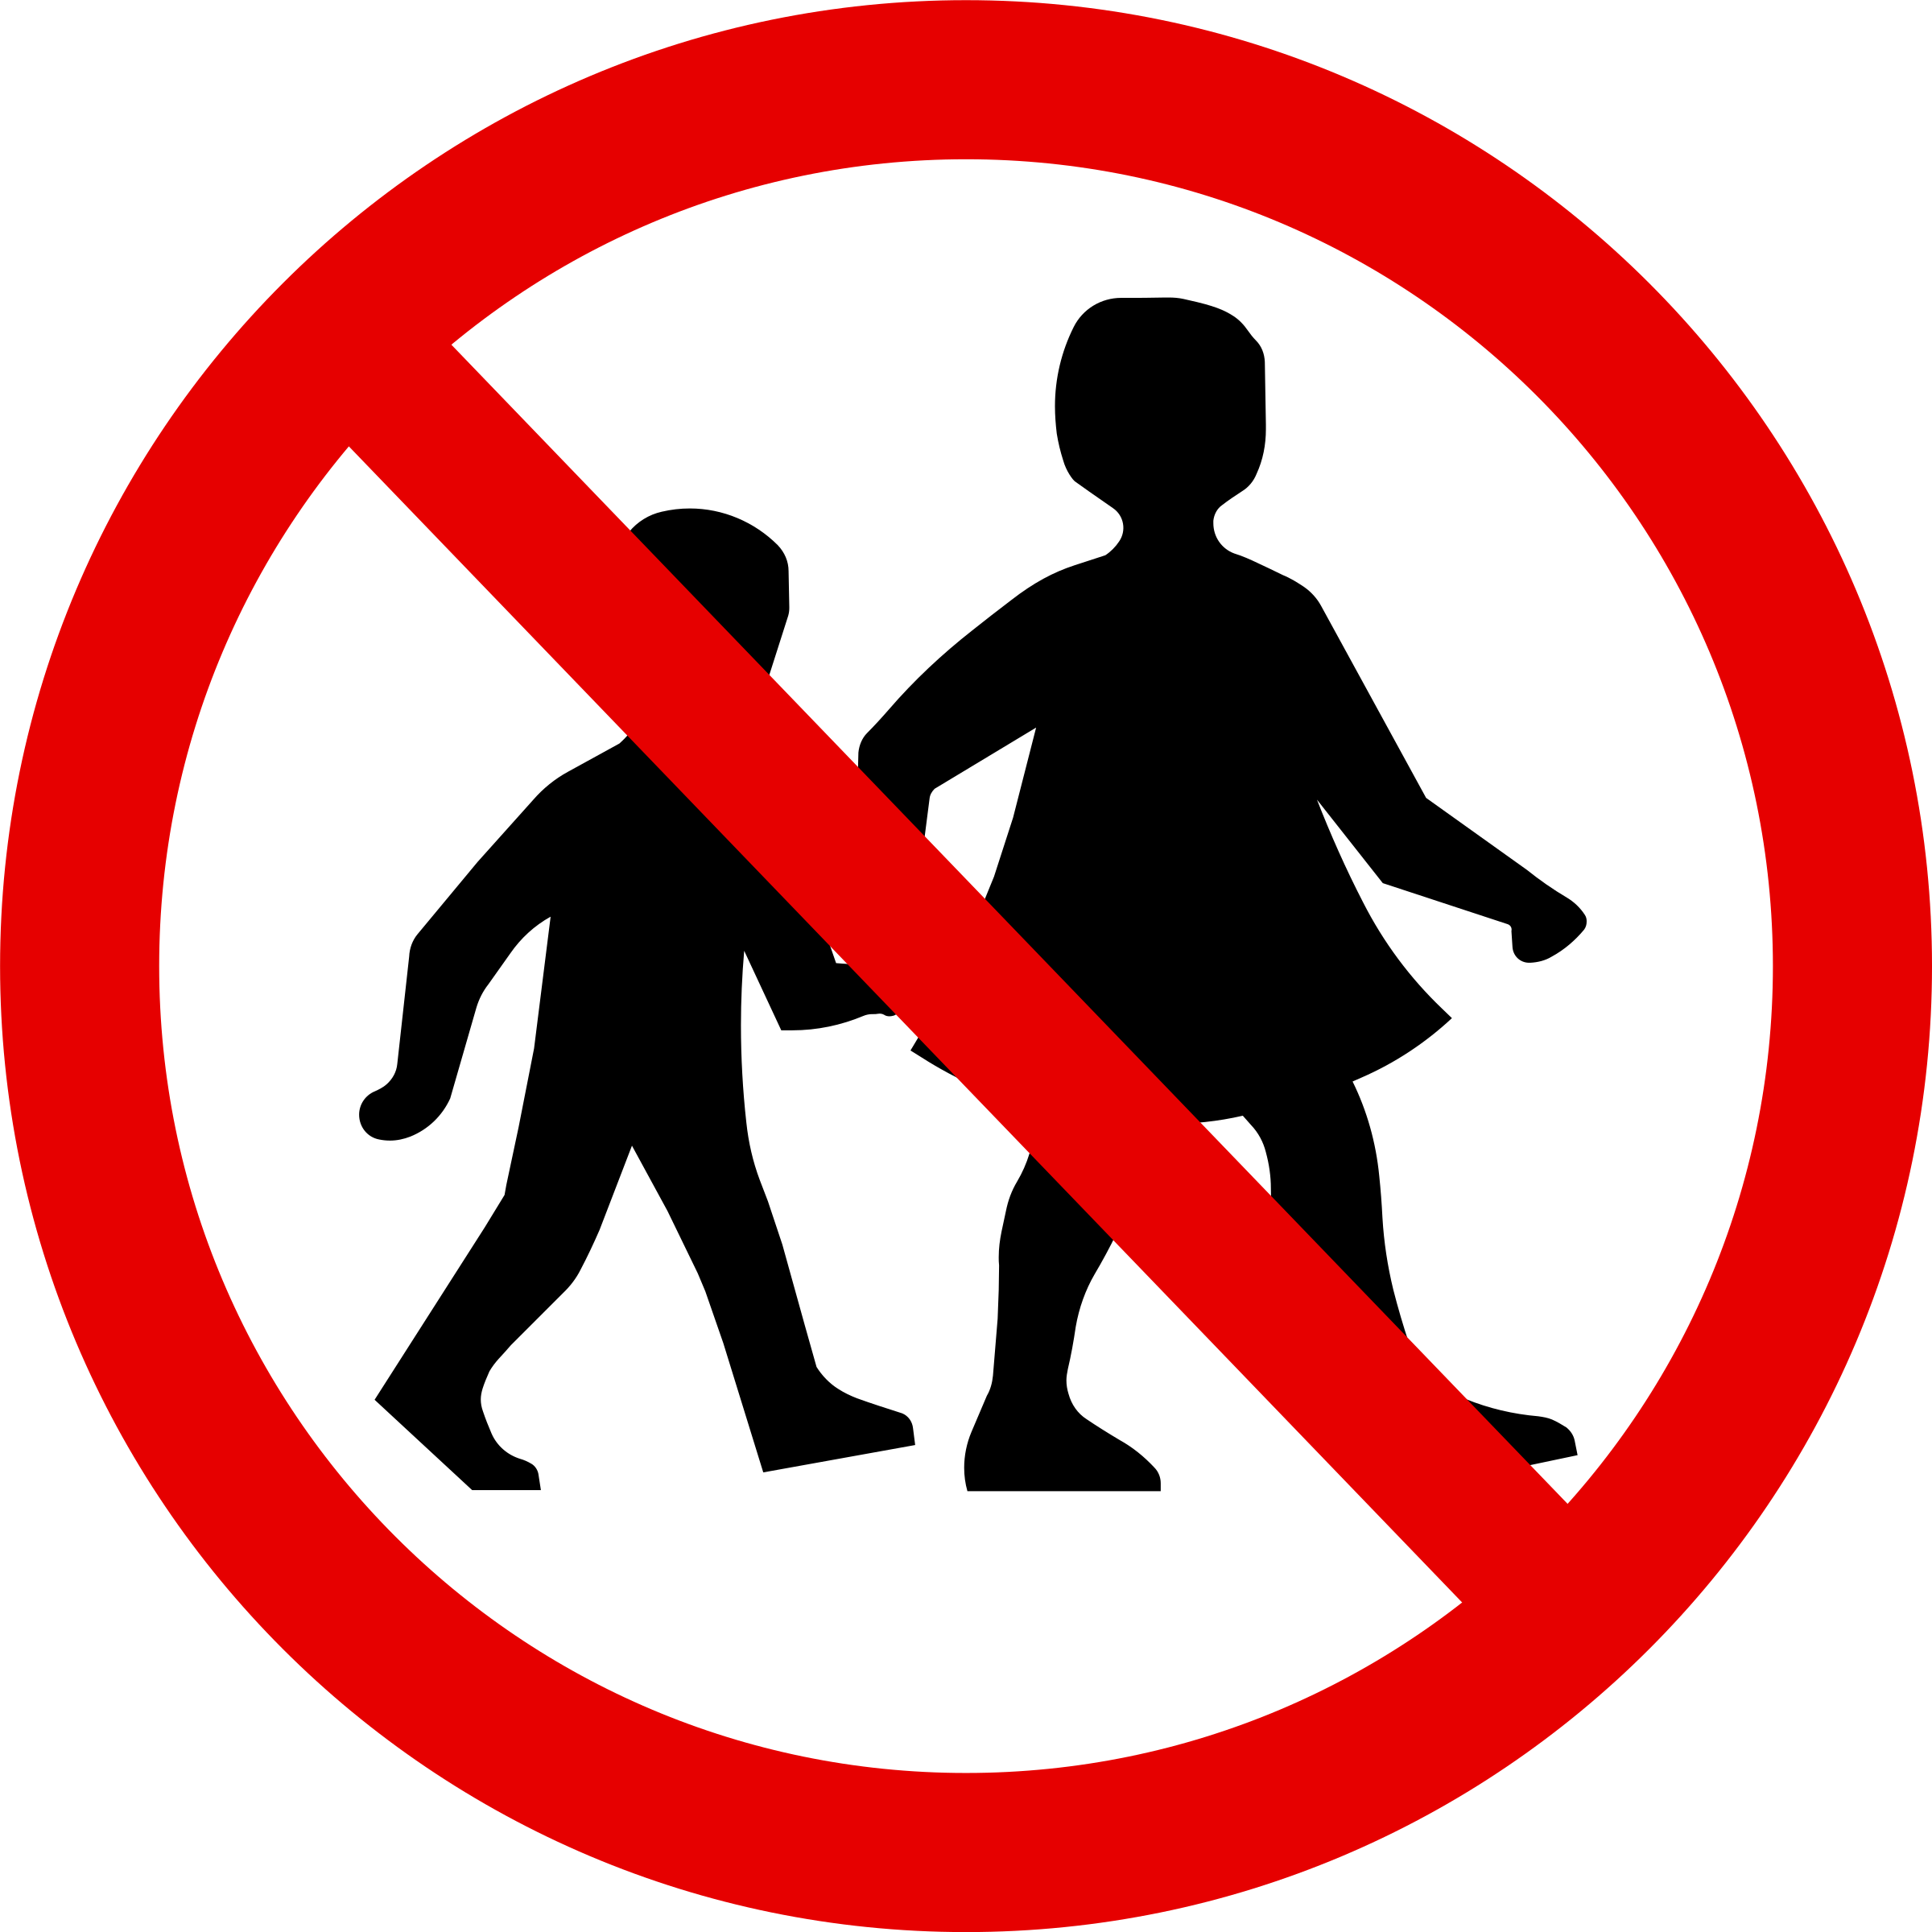 No children png. Sign icons free and